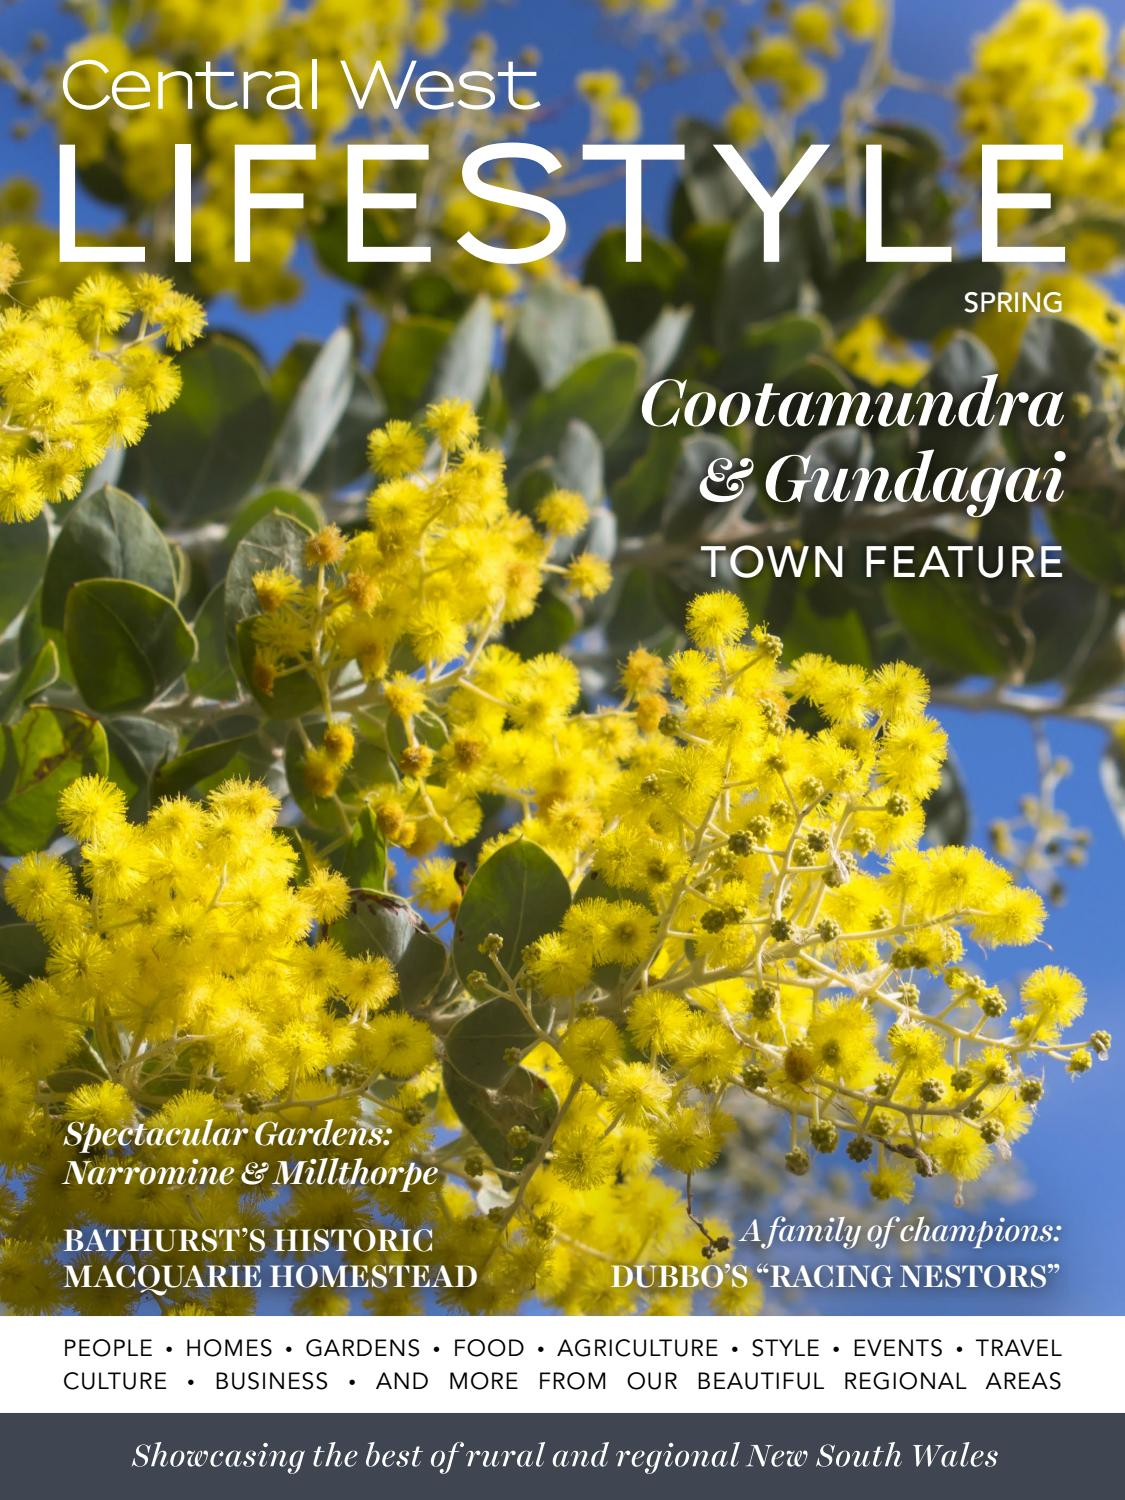 22 Central West Lifestyle Spring 2018 By Element Case Sector Apple Iphone 7 Plus Citron Magazine Issuu